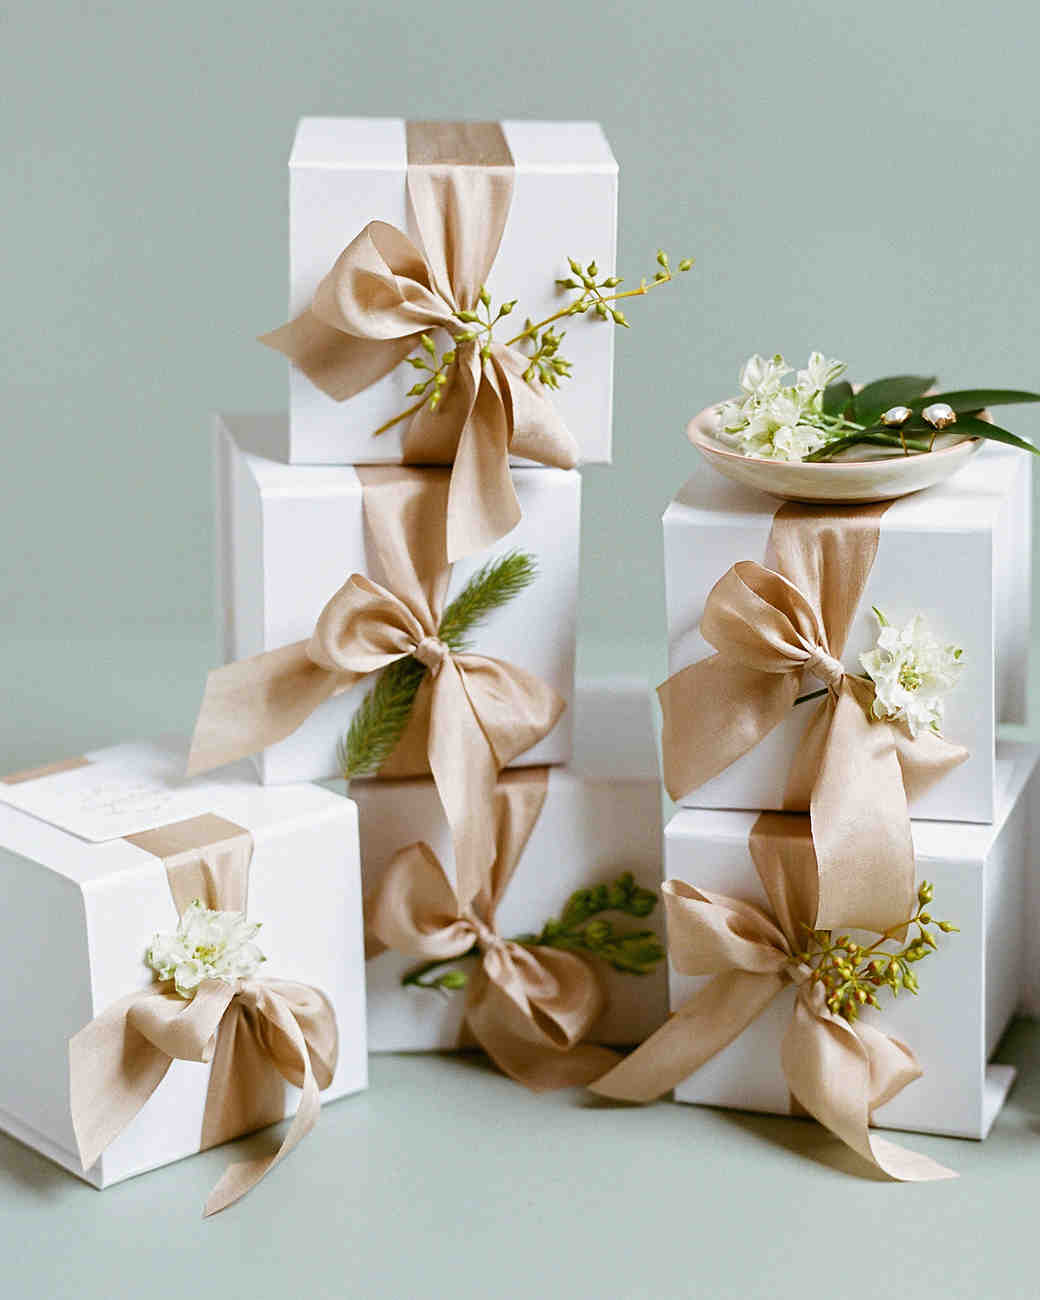 Wedding Gifts Boxes: 34 Festive Fall Wedding Favor Ideas